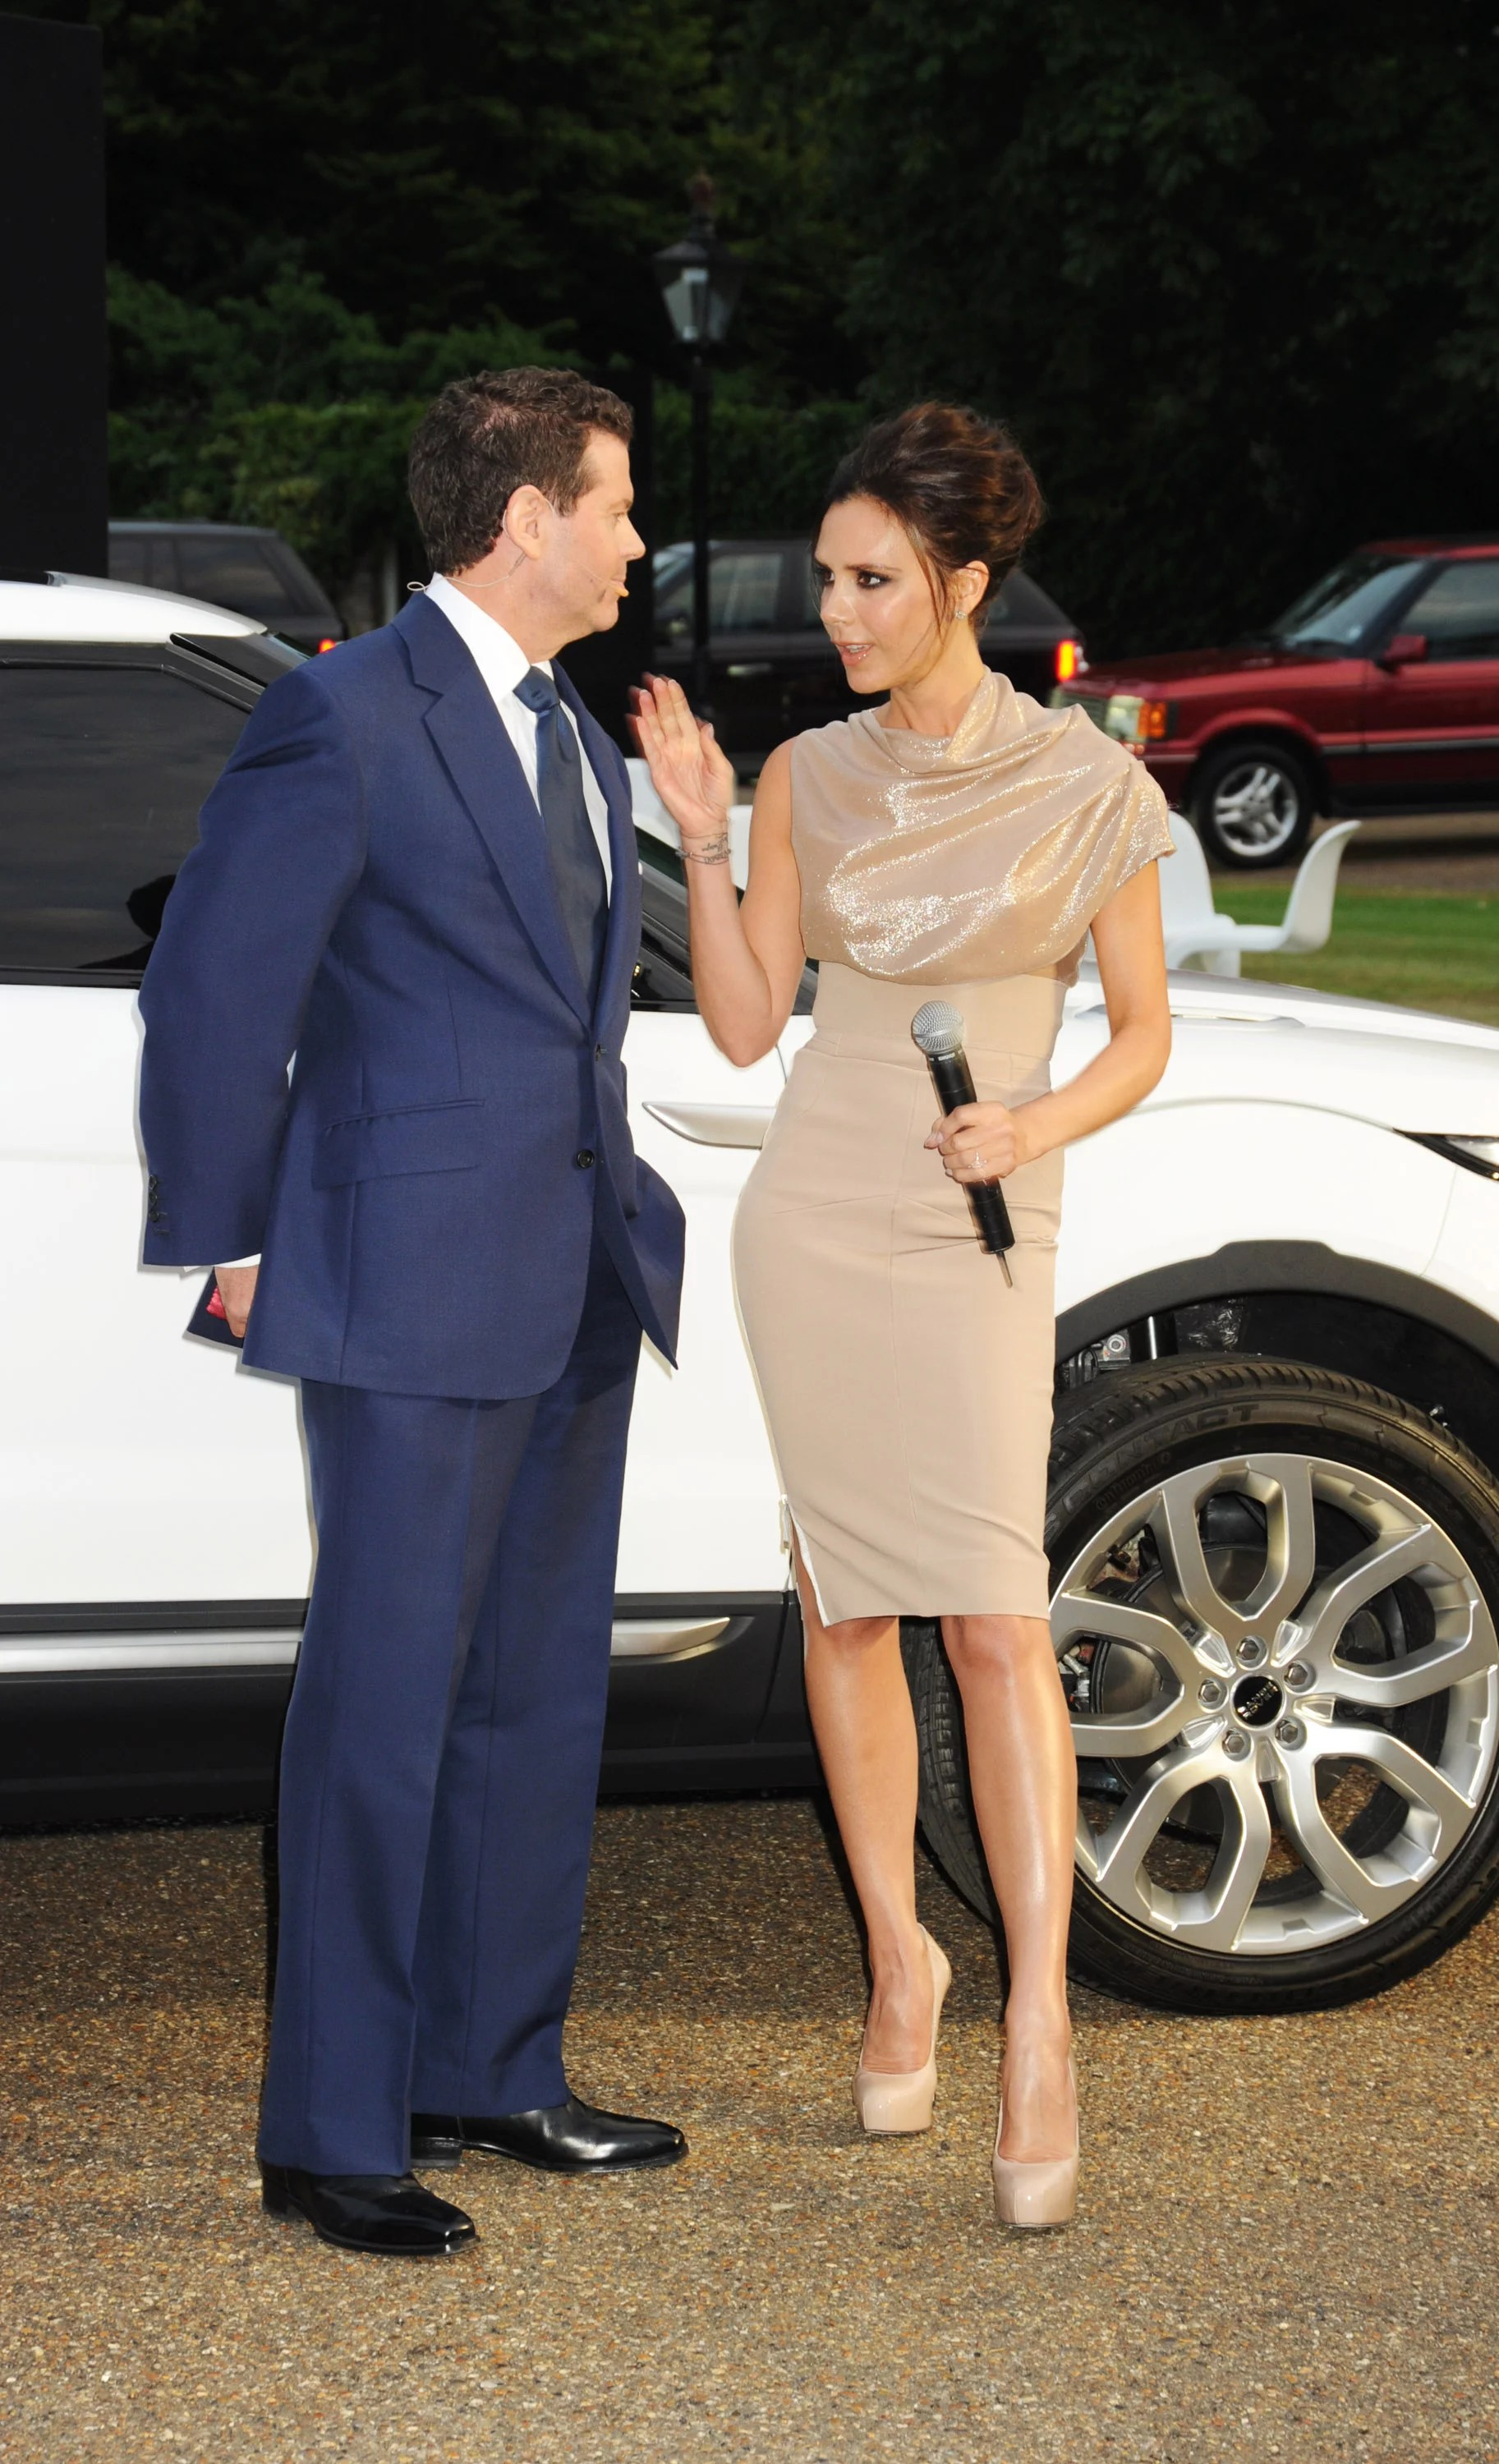 of Victoria Beckham at Range Rover Anniversary Party in